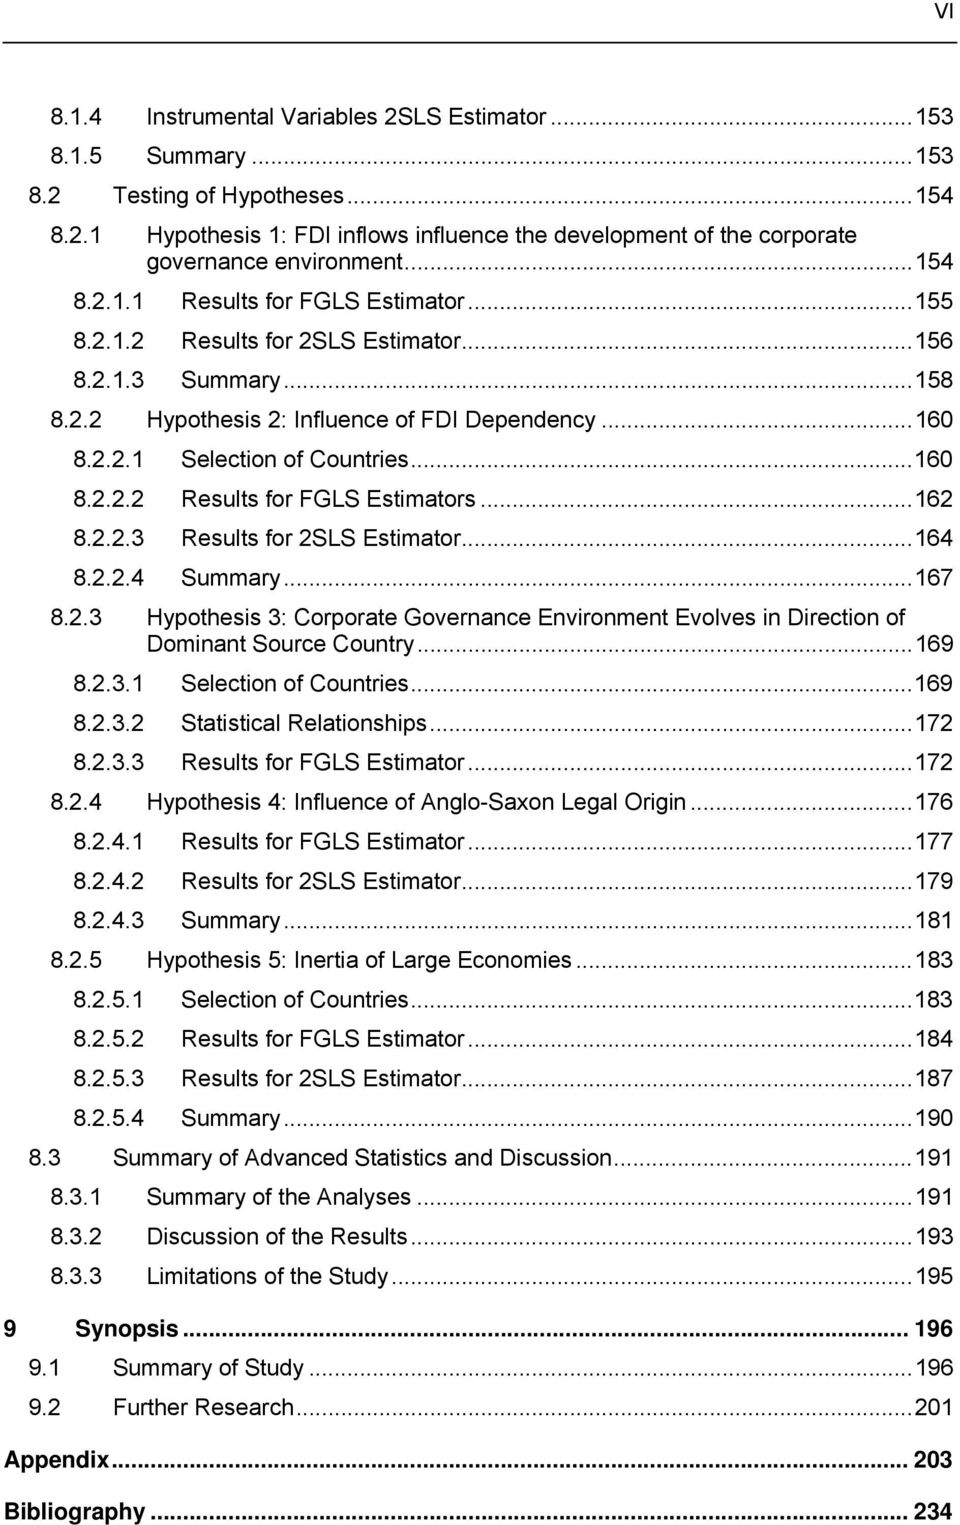 ..160 8.2.2.2 Results for FGLS Estimators...162 8.2.2.3 Results for 2SLS Estimator...164 8.2.2.4 Summary...167 8.2.3 Hypothesis 3: Corporate Governance Environment Evolves in Direction of Dominant Source Country.